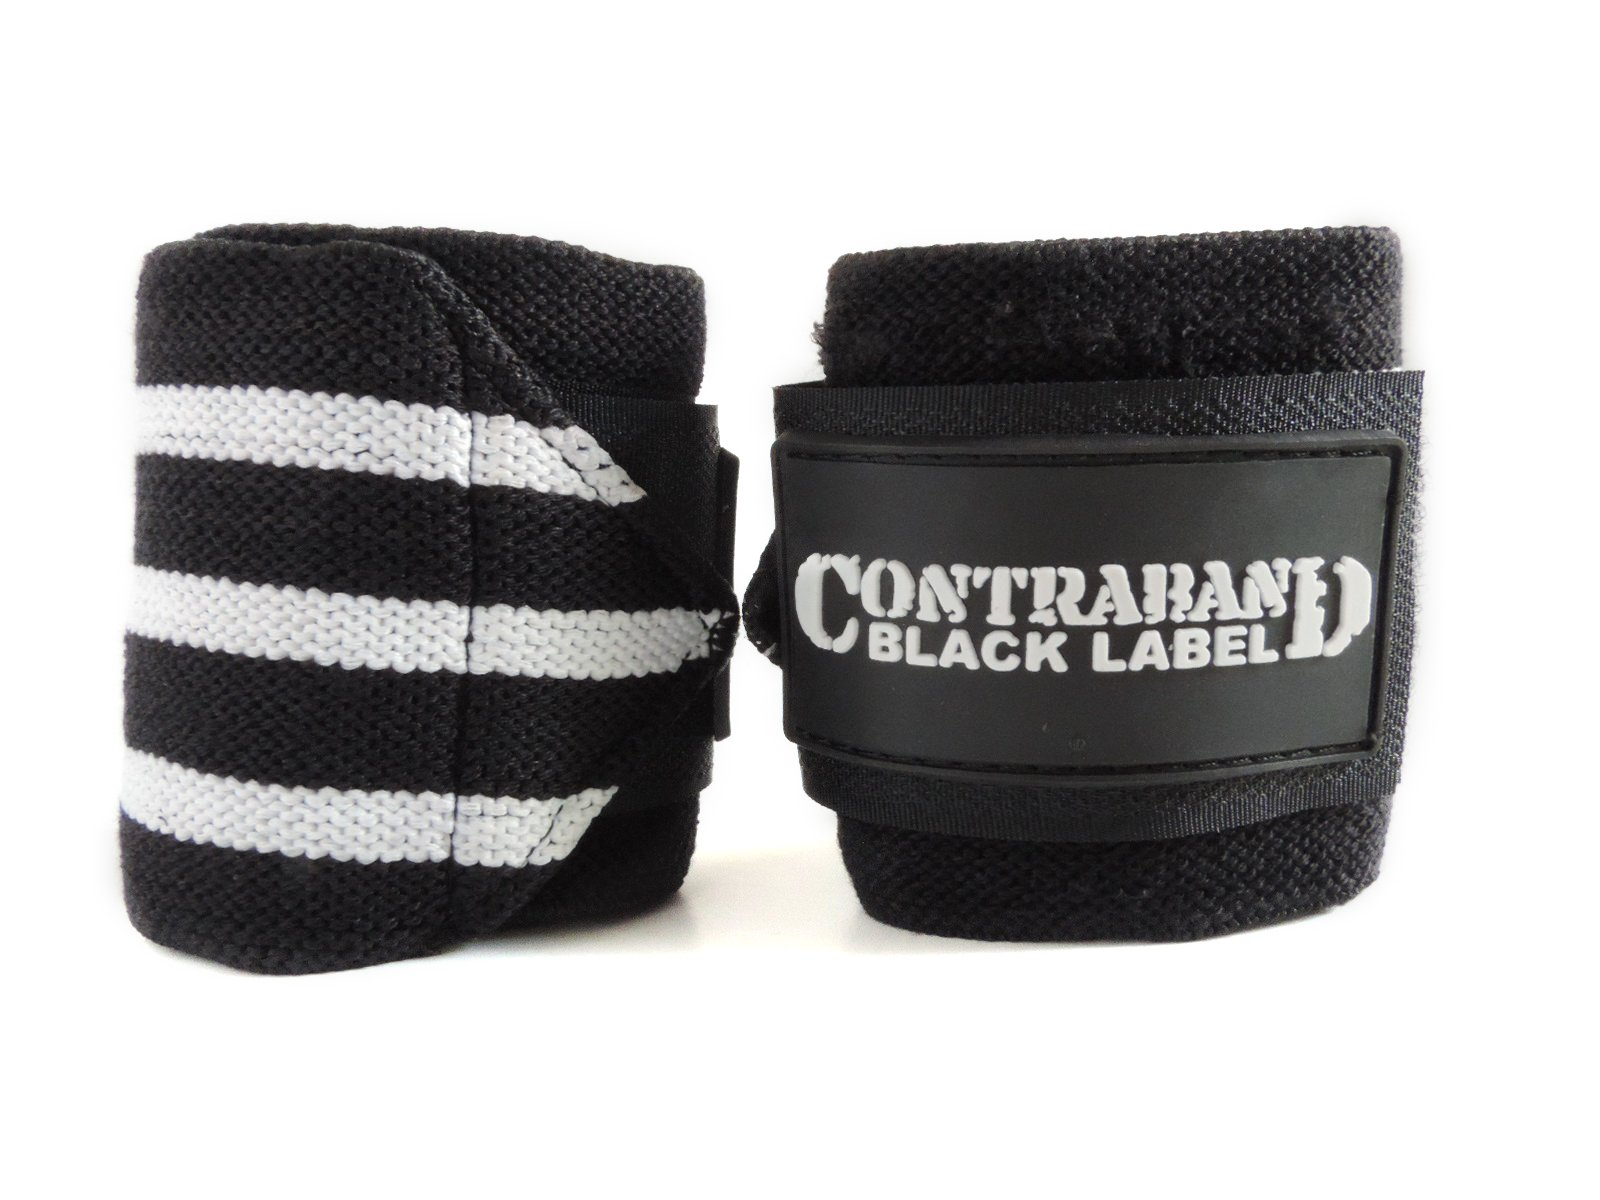 Contraband Black Label 1001 Weight Lifting Wrist Wraps w/Thumb Loops (Pair) - Competition Grade Wrist Support USPA Approved for Powerlifting, Bodybuilding, Strongman (18in, Medium (White))